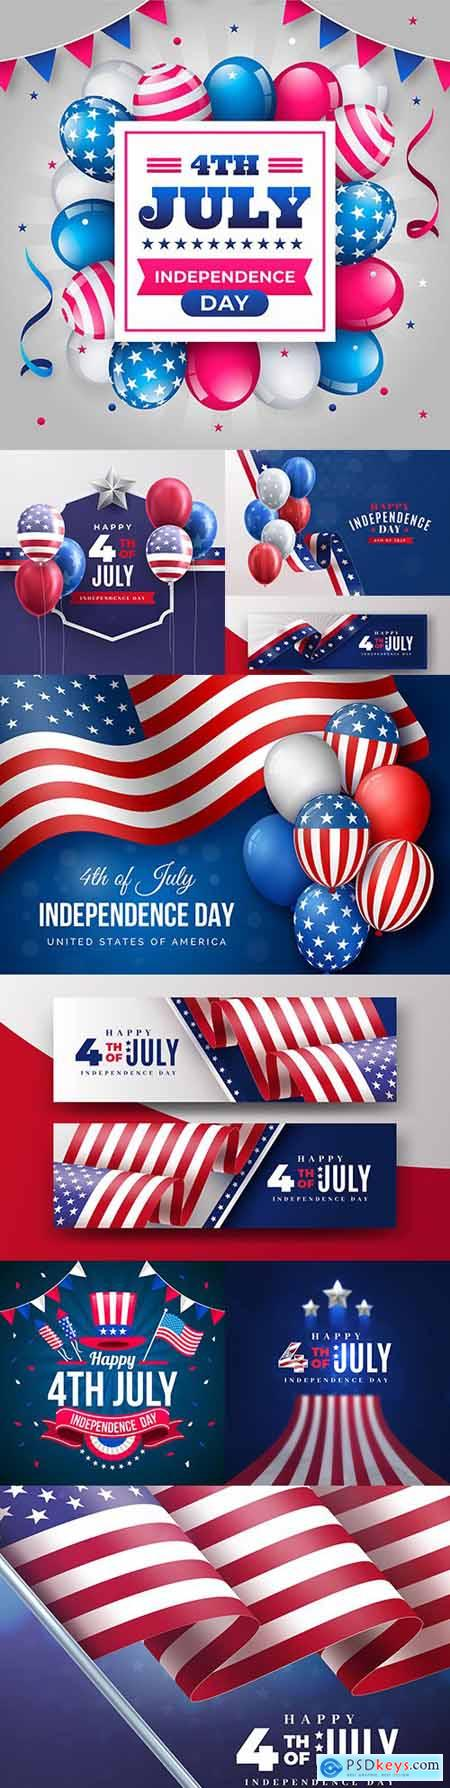 July 4 on Independence Day realistic illustrations